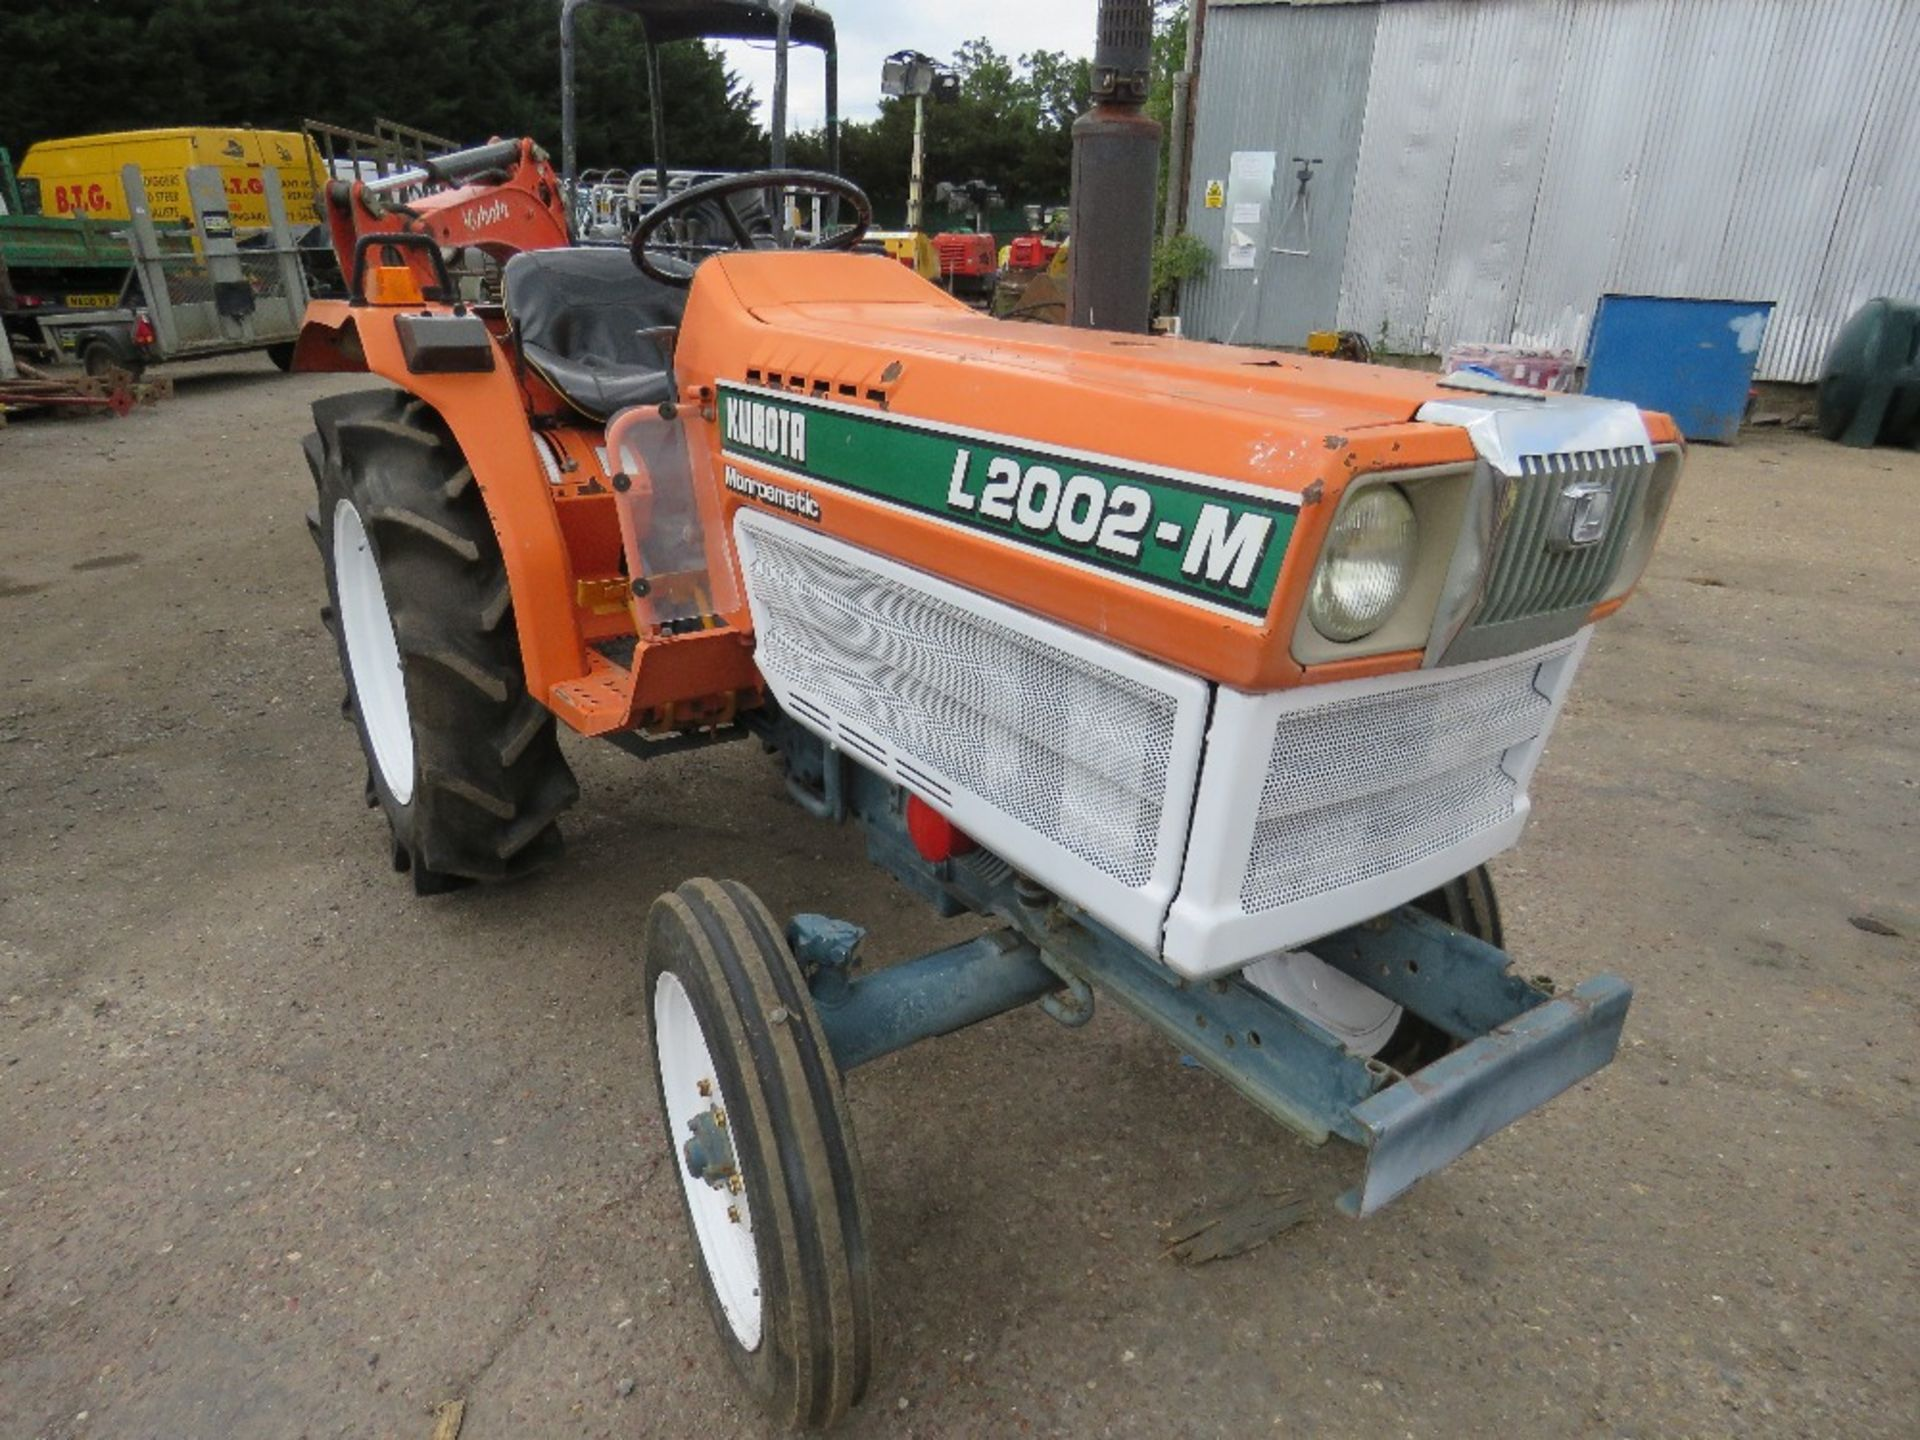 Lot 5 - KUBOTA 20HP 2WD COMPACT TRACTOR C/W REAR LINKAGE. WHEN TESTED WAS SEEN TO DRIVE, STEER AND BRAKE